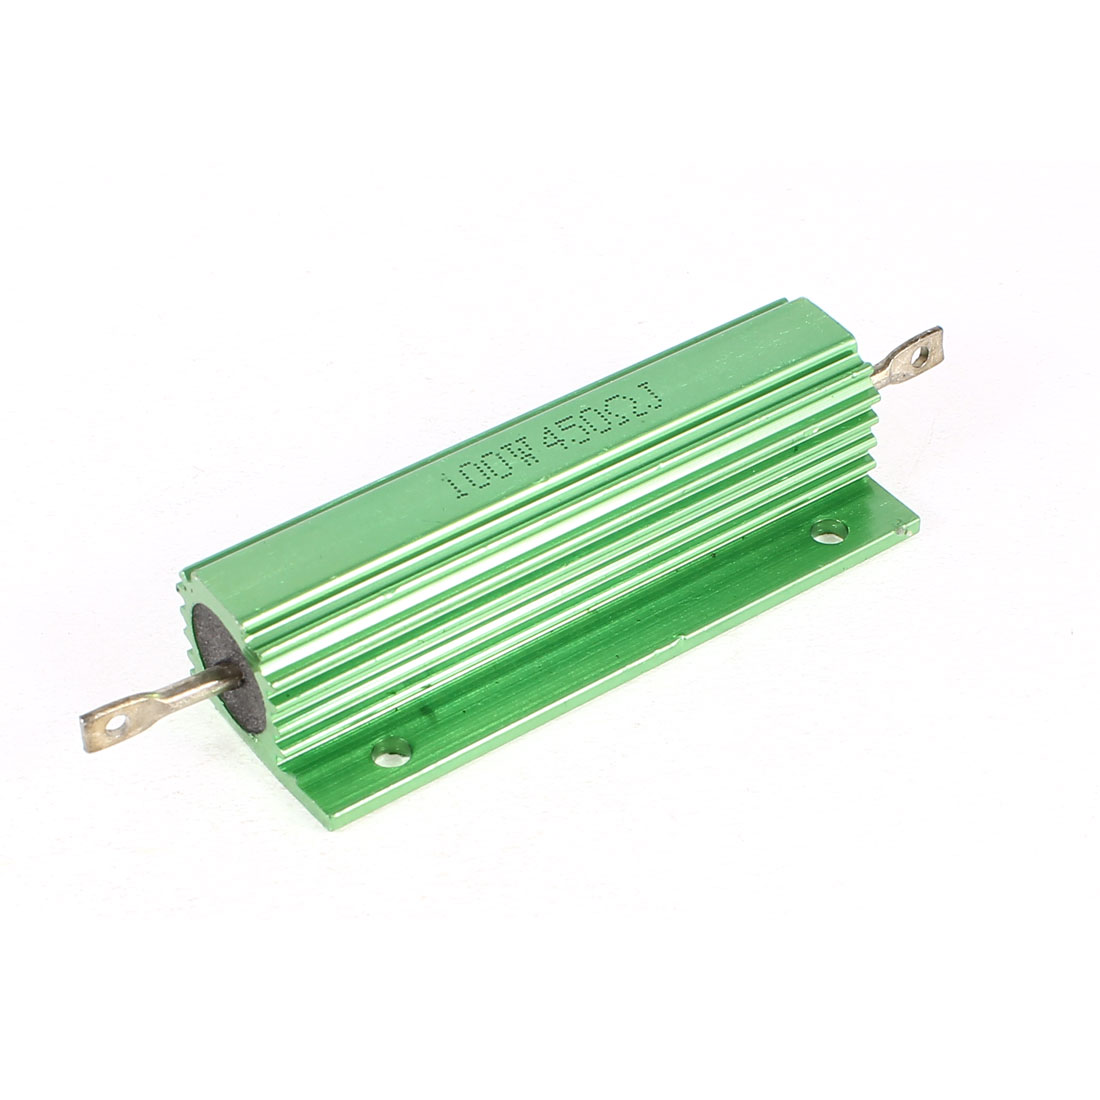 5% 100W 450 Ohm Wirewound Aluminum Housed Resistor Green